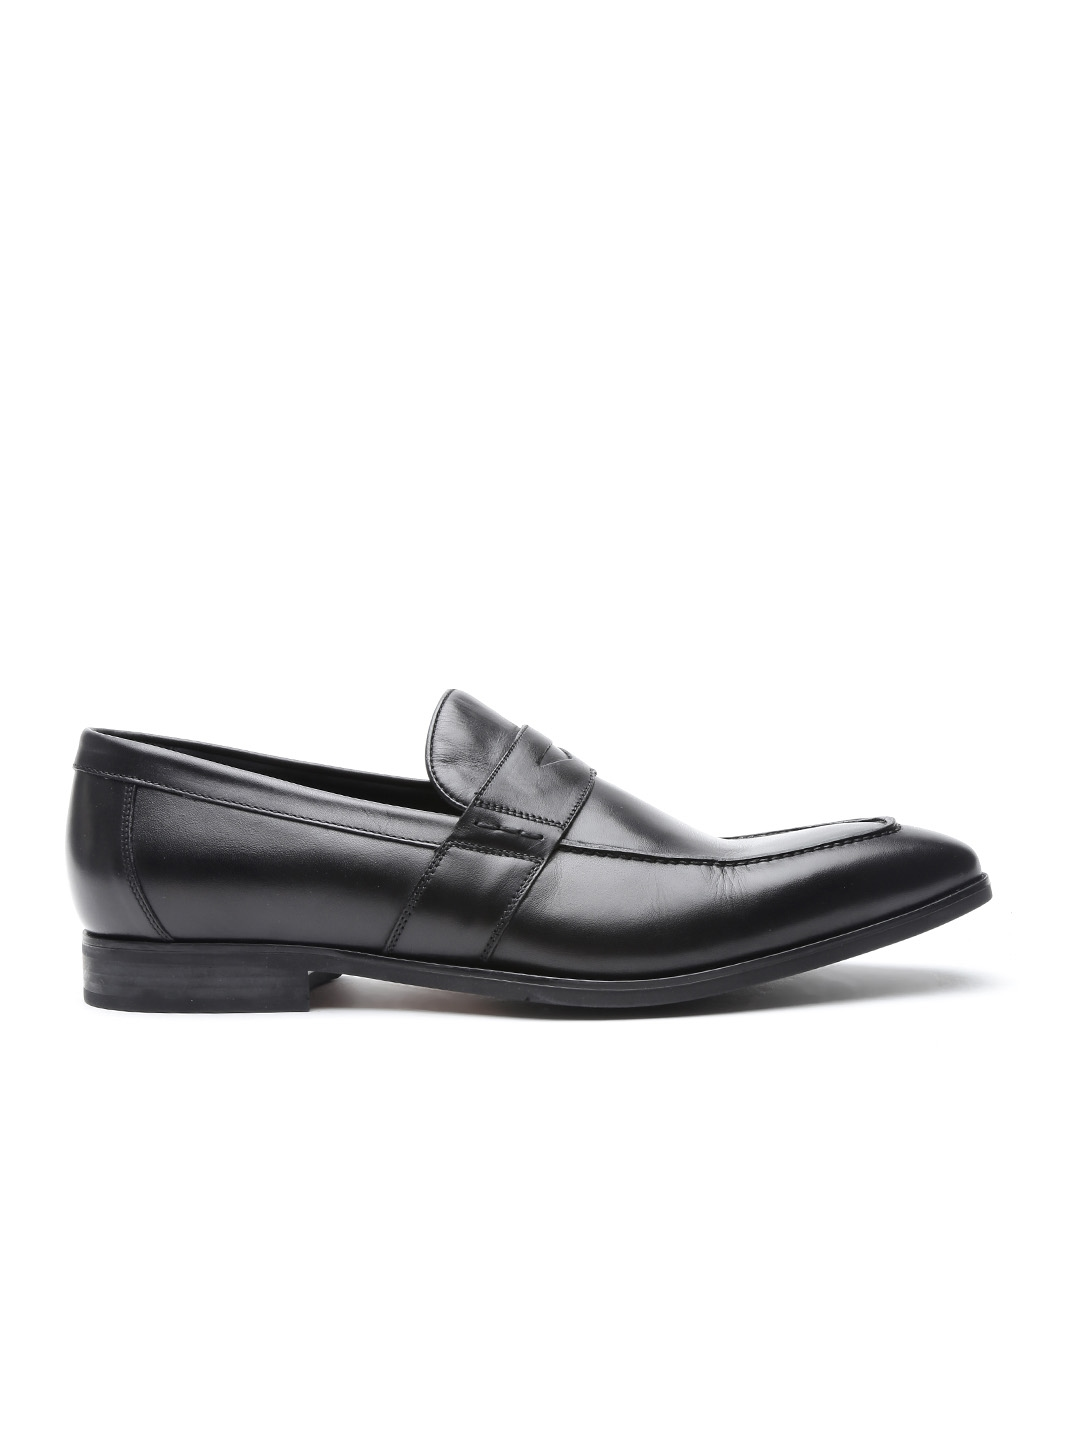 2d7a659c48 Buy GEOX Respira Men Black Breathable Italian Patent Leather Formal ...